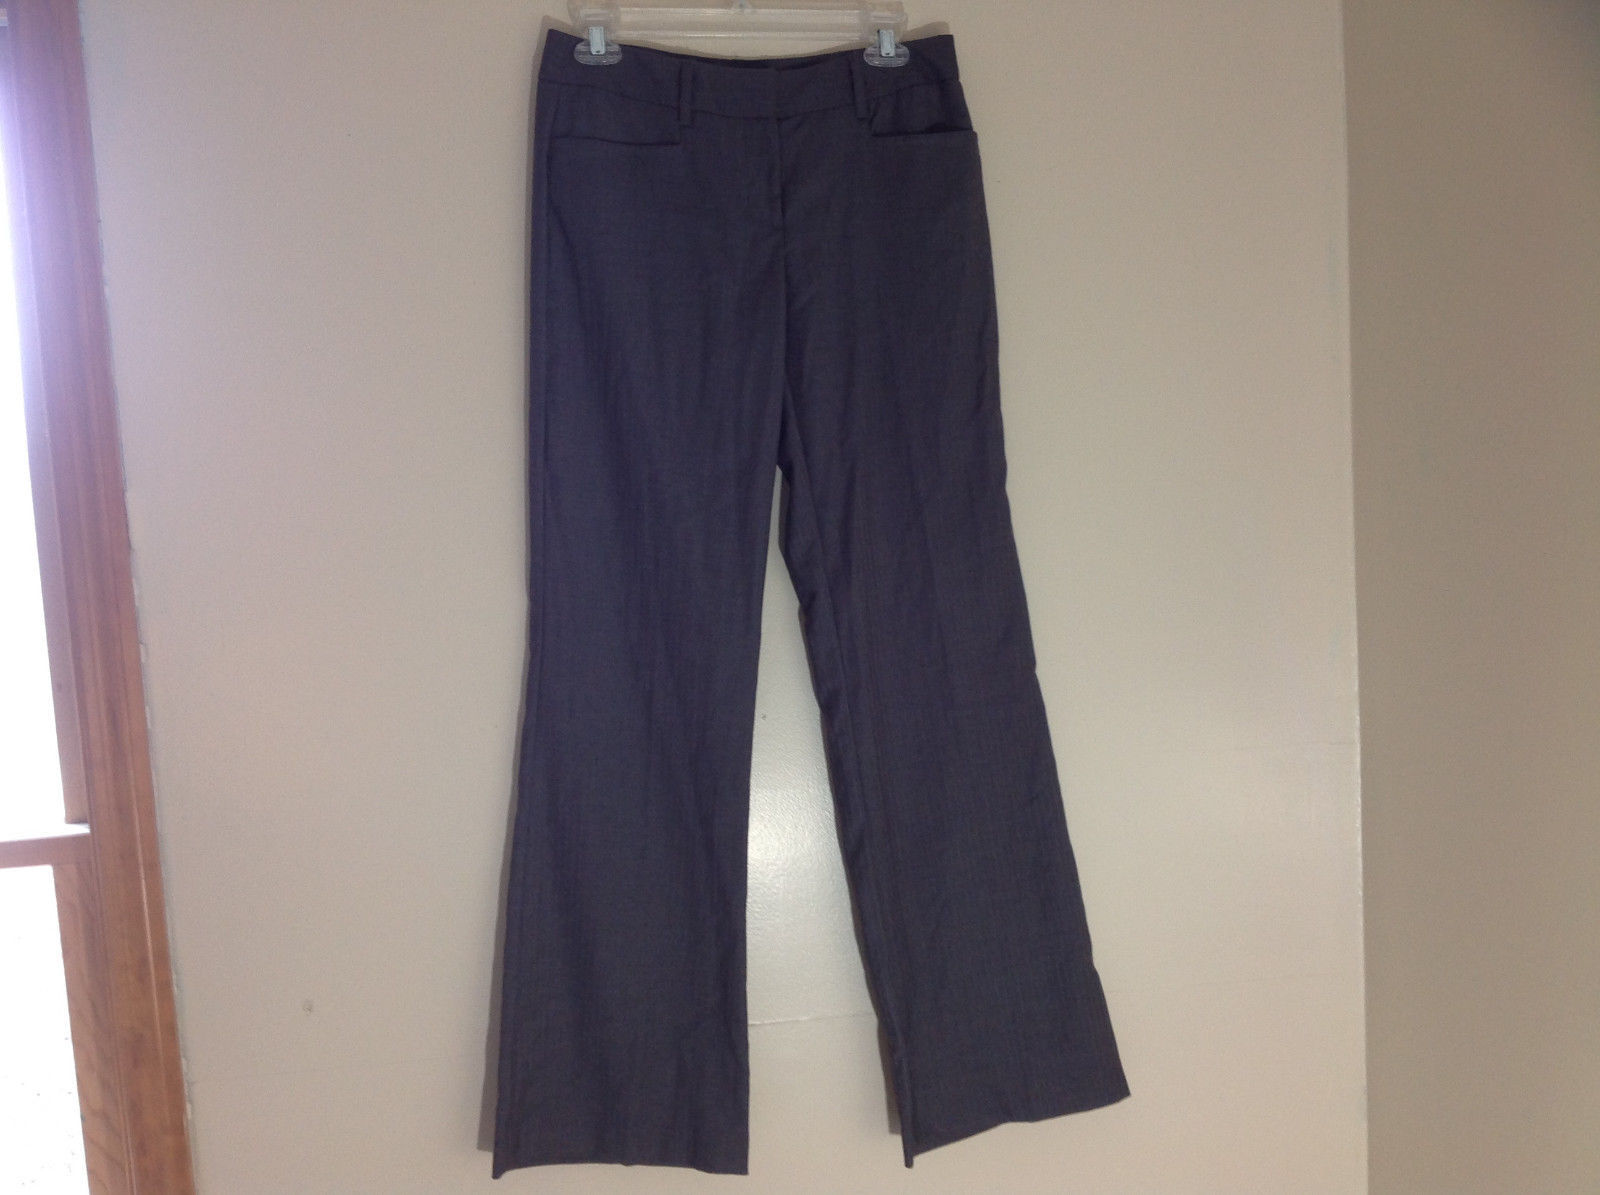 Apt. 9 Modern Fit Gray Pin Striped Dress Pants Front and Back Pockets Size 4